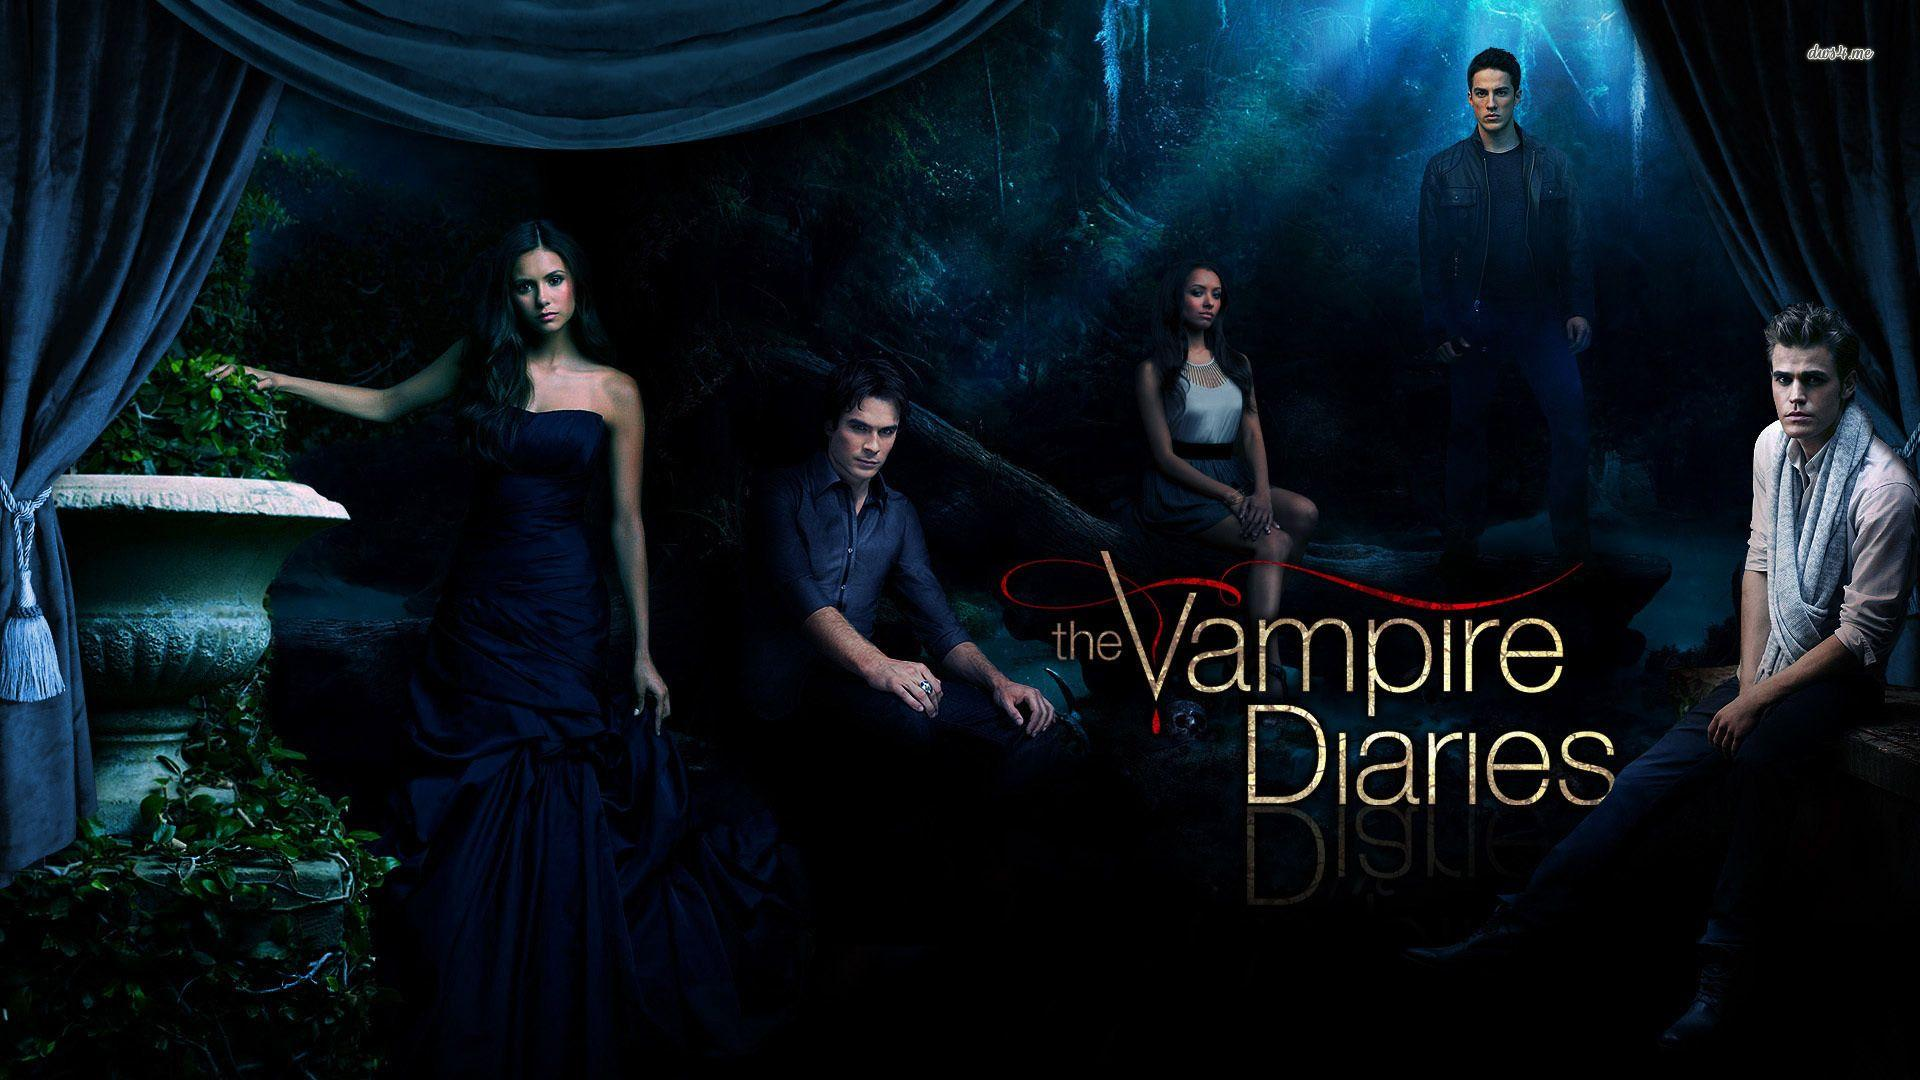 Vampire Diaries Wallpapers High Resolution and Quality Download